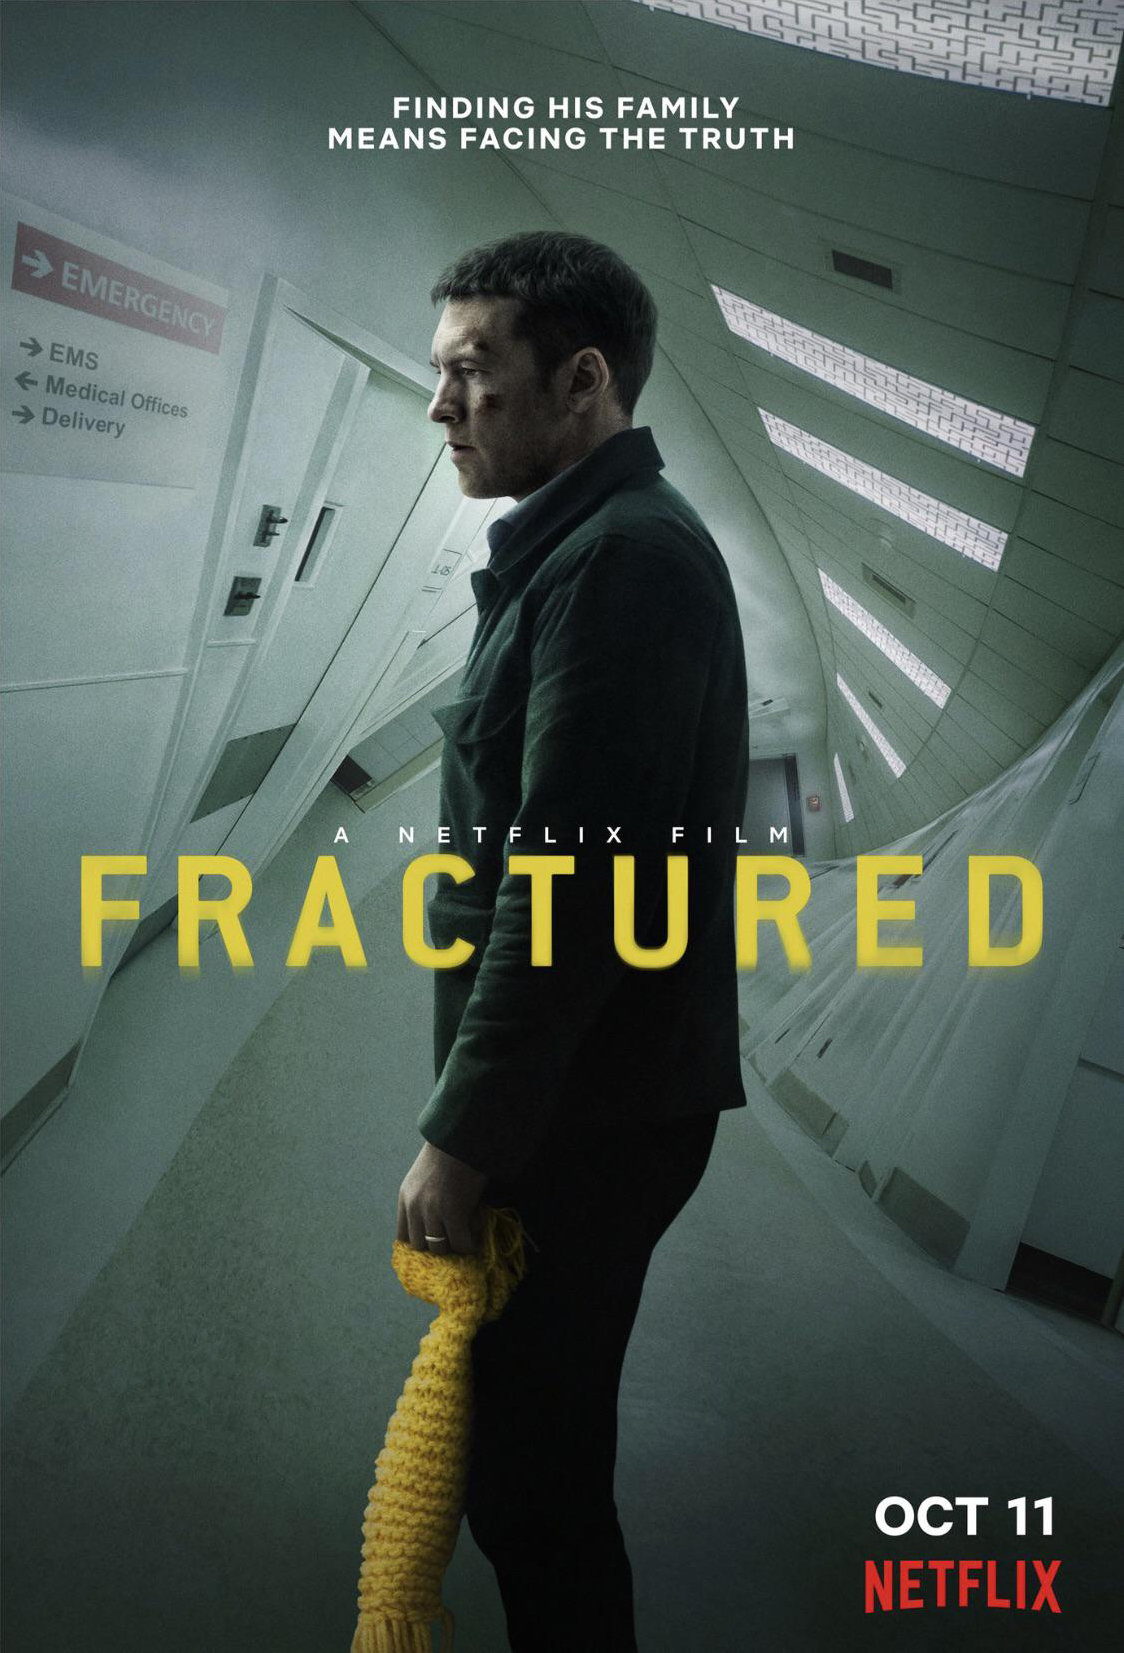 Fractured poster image